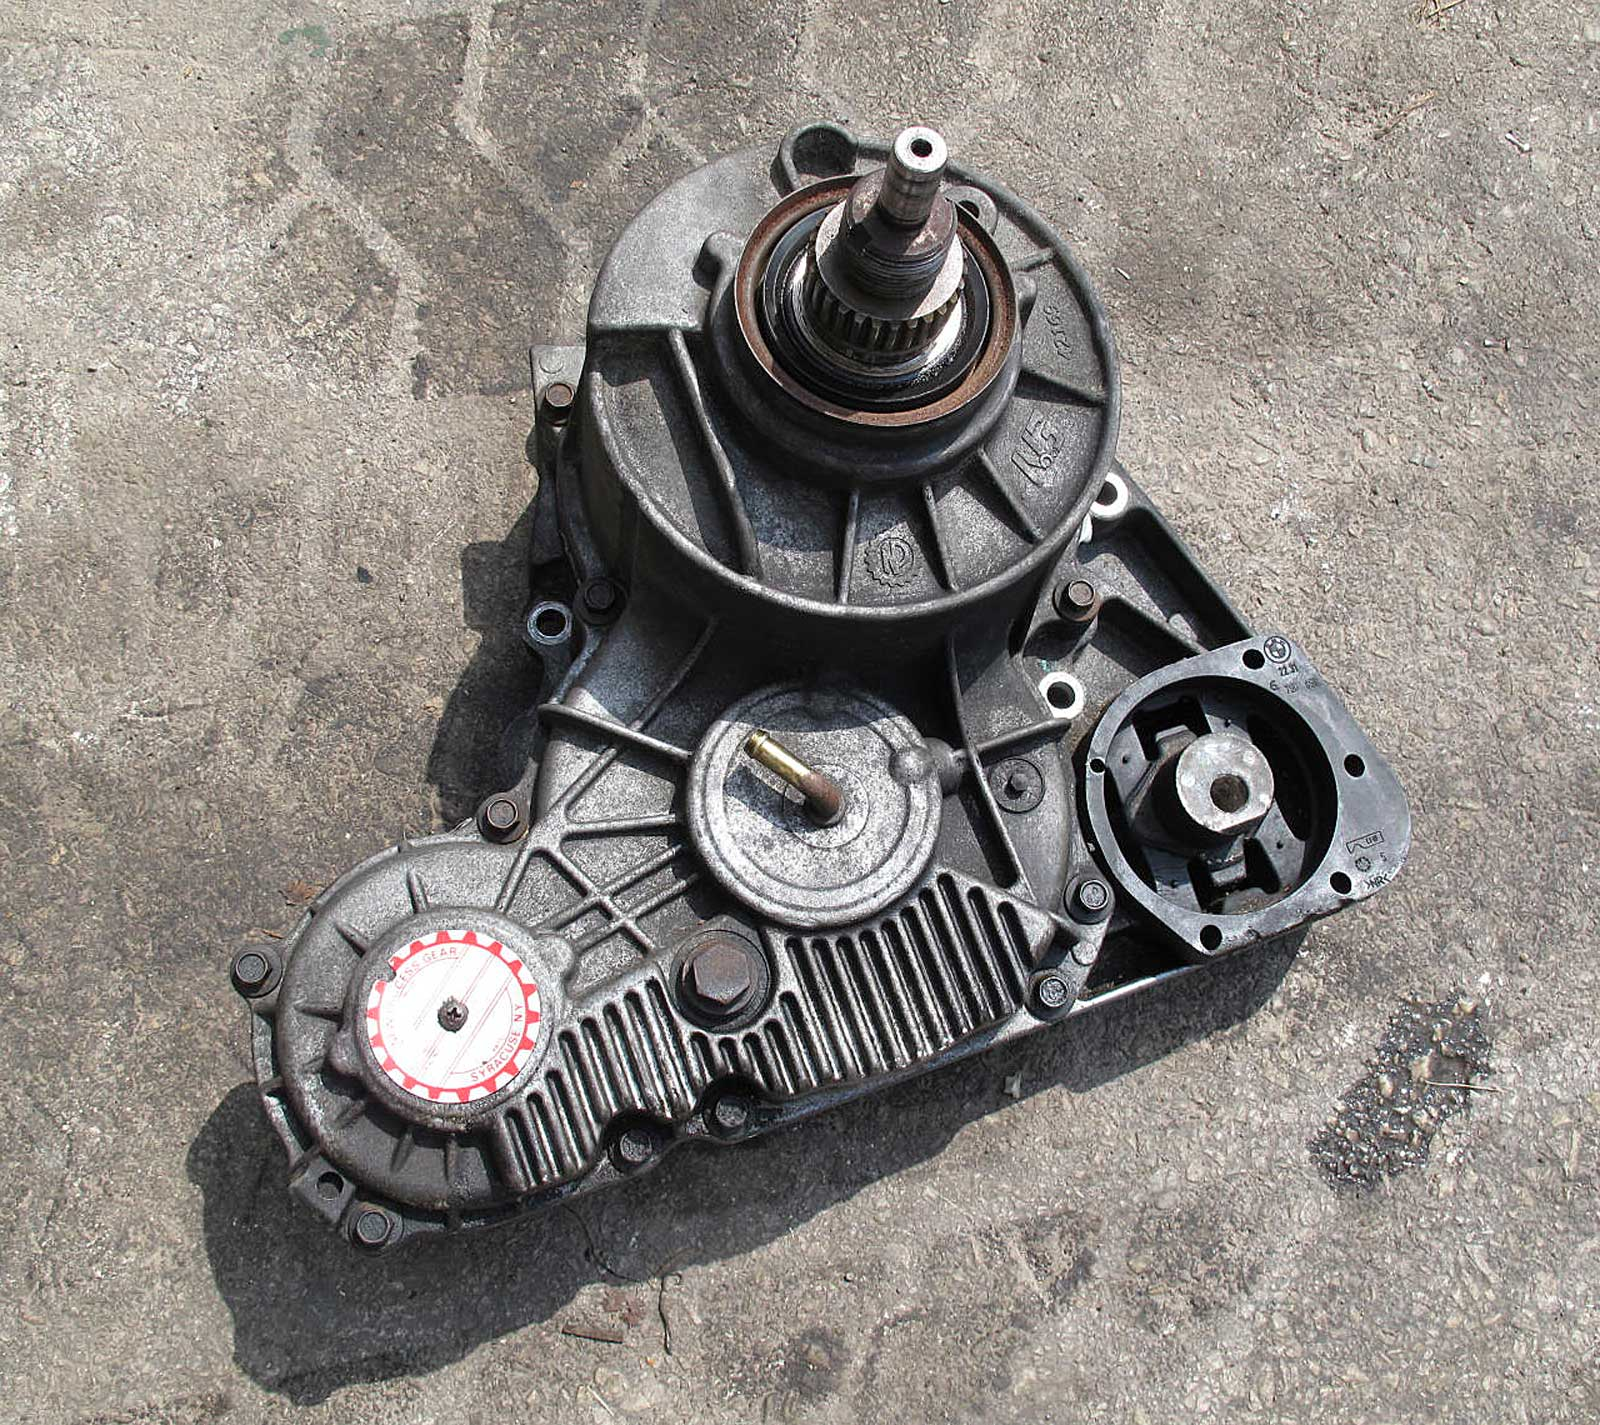 Bmw e46 3 series xi awd secondary transmission transfer case 2001 bmw e46 3 series xi awd secondary transmission transfer case 2001 2003 oem used publicscrutiny Gallery